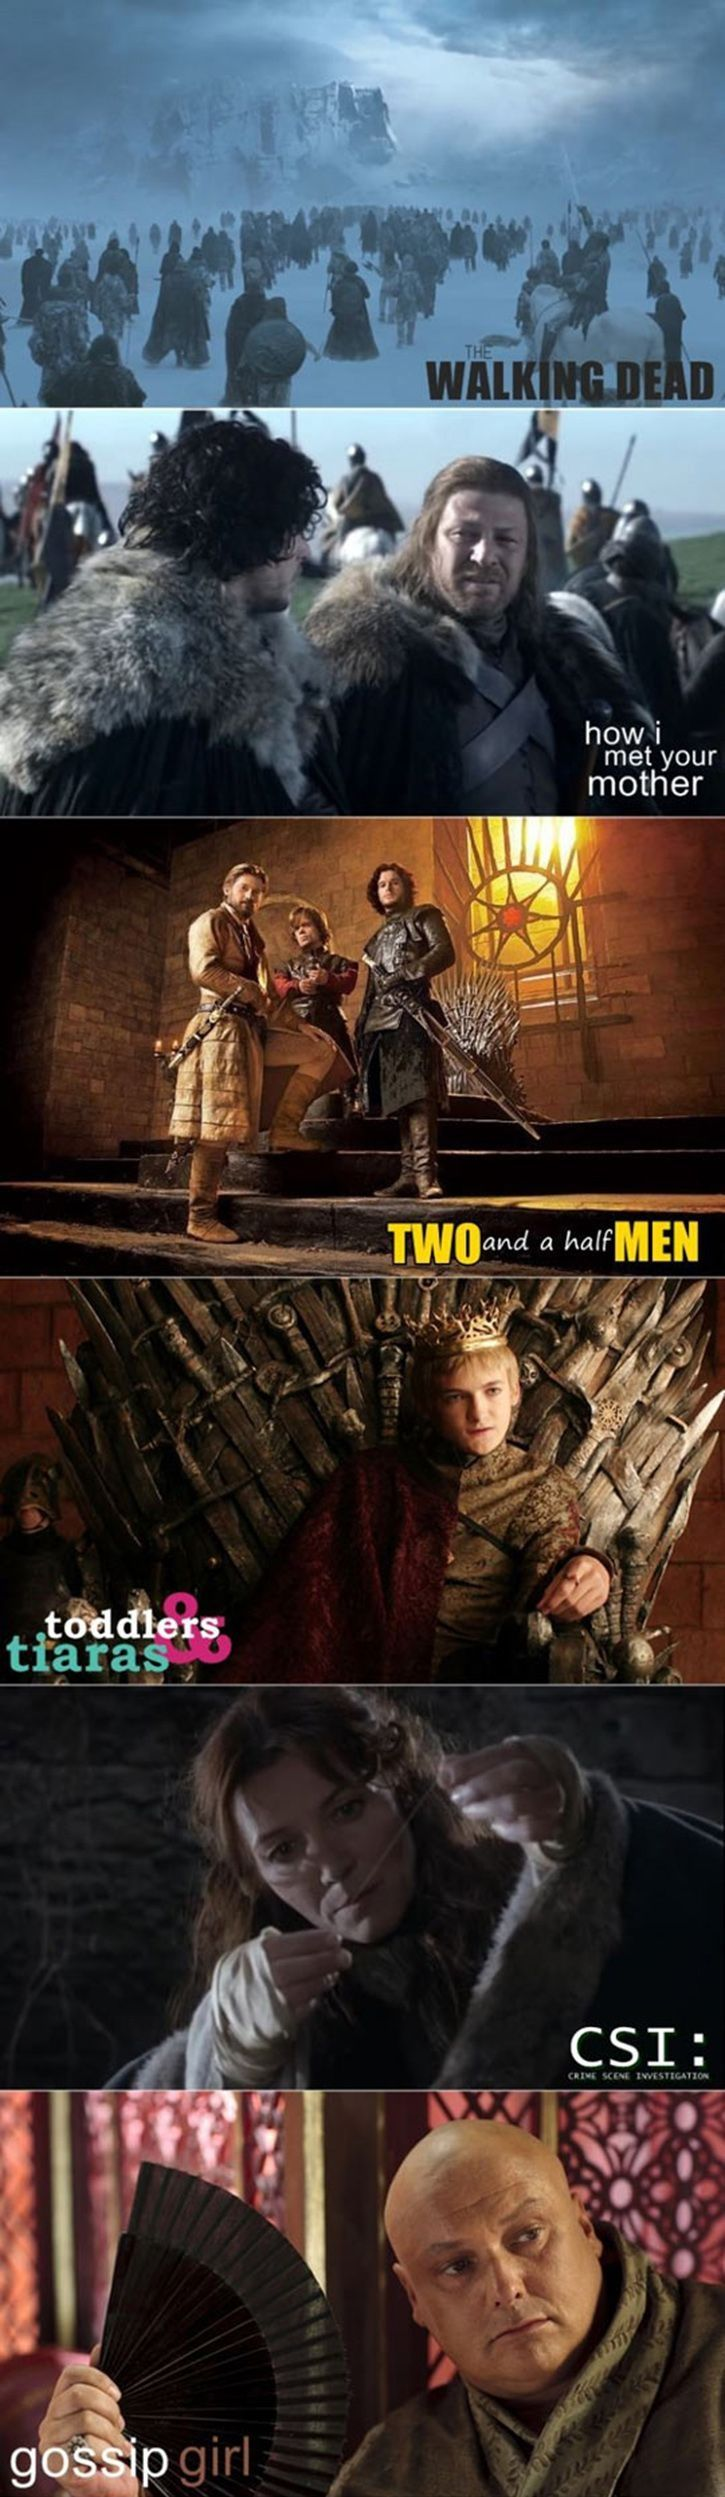 Game of Thrones reimagined as other popular TV shows. Toddlers and Tiaras with Joffrey was the best! xD